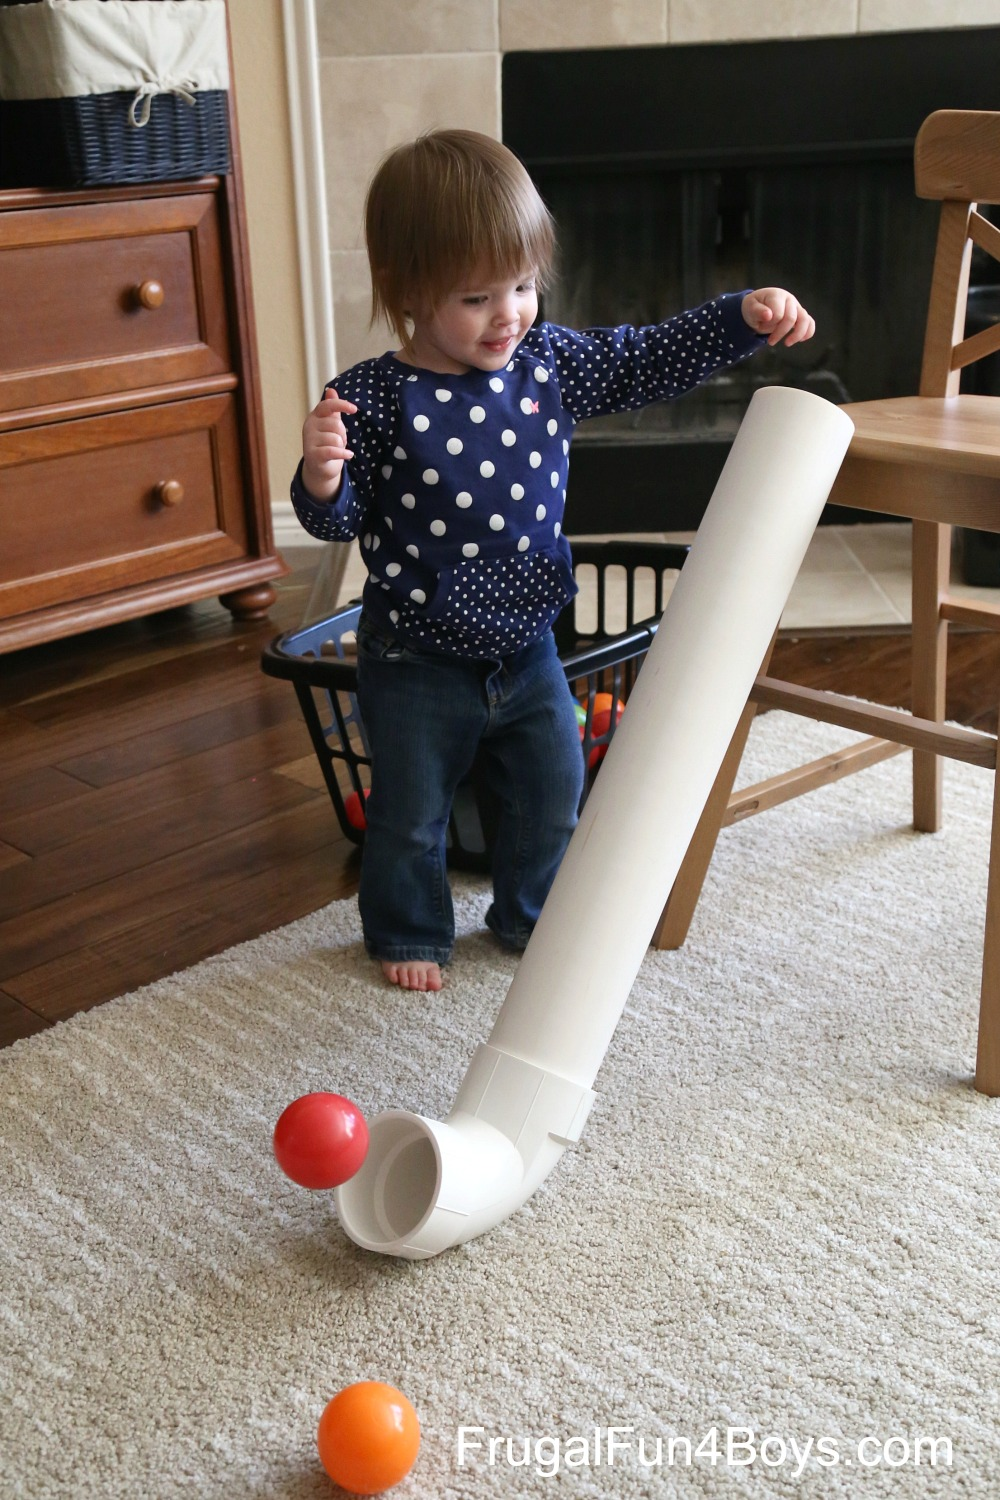 10 Ball Games For Kids Ideas For Active Play Indoors Frugal Fun For Boys And Girls